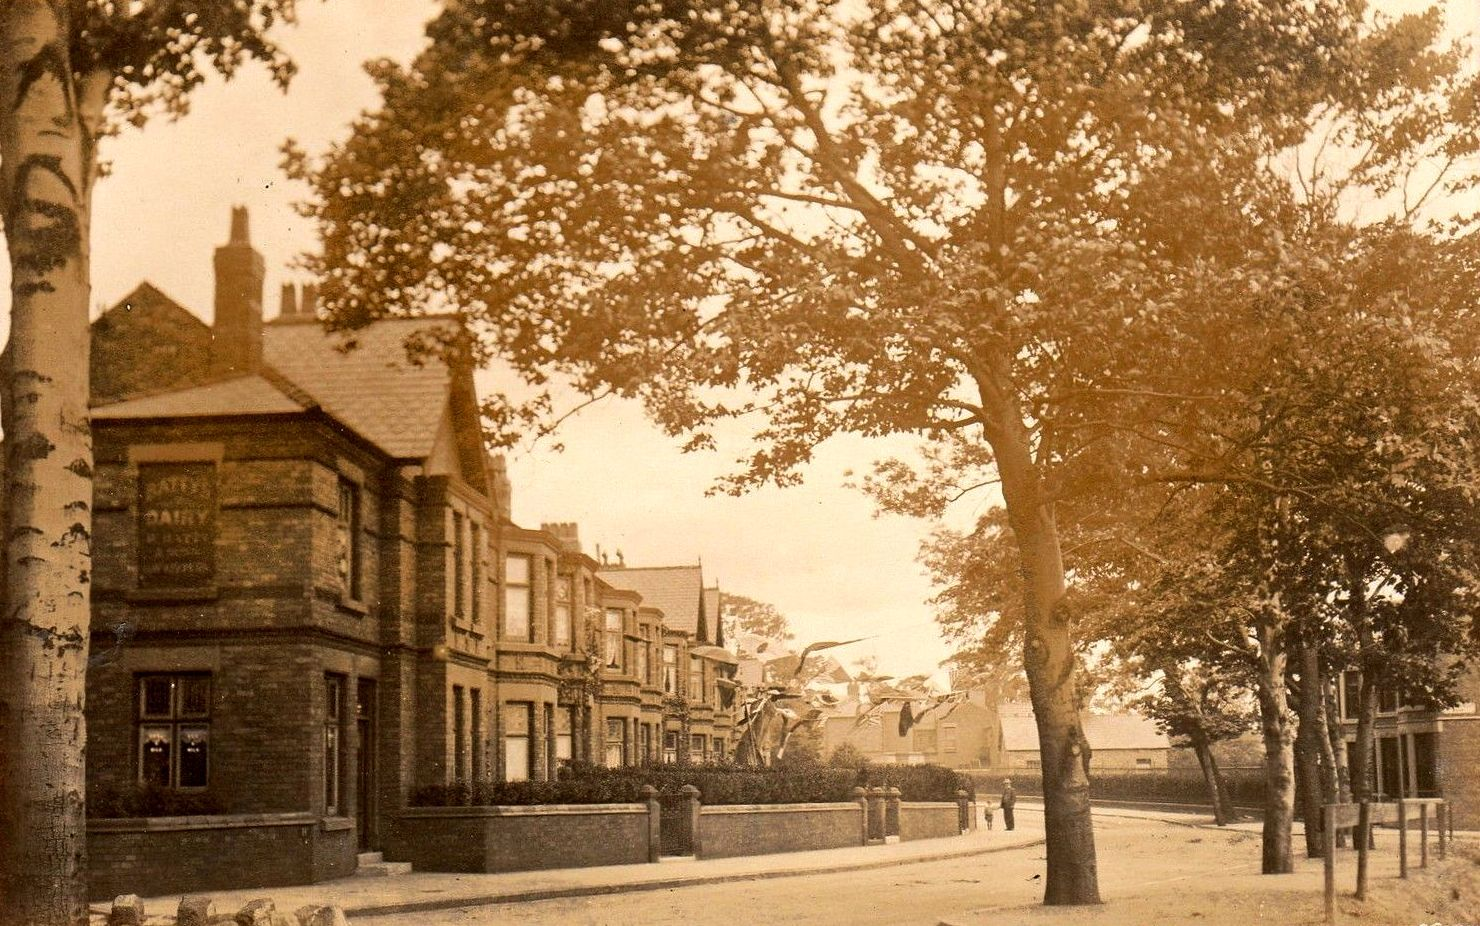 Prince Alfred road, Wavertree. Early 1900's. Liverpool